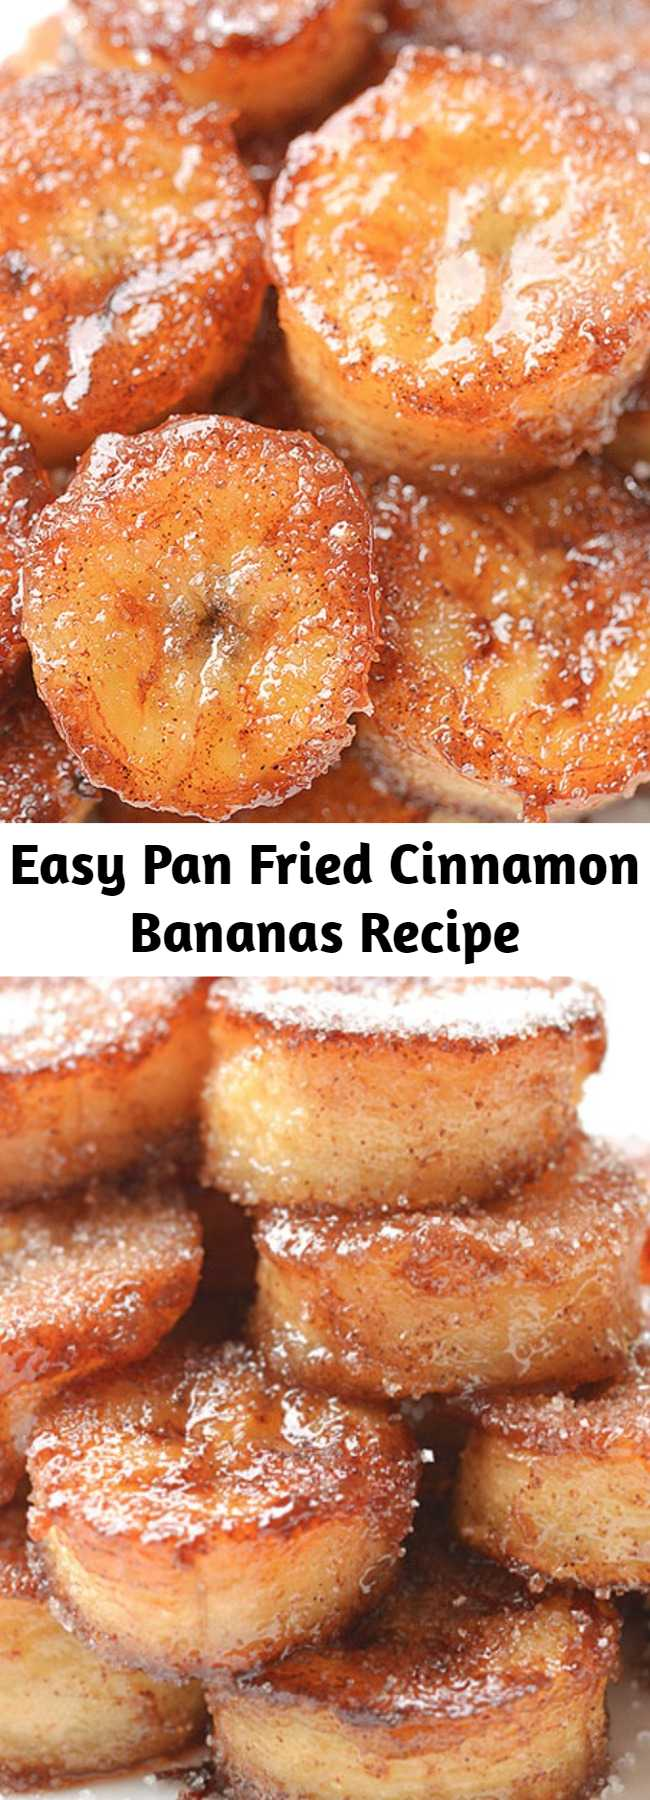 Easy Pan Fried Cinnamon Bananas Recipe - These pan fried cinnamon bananas are soooooo good! They only take a few minutes to make and they transform boring old bananas into a drool-worthy snack or dessert. I eat my pan fried bananas all on their own, but they would taste amazing (seriously AMAZING) served over ice cream. They're caramelized on the outside with a soft and sweet inside and make a great dessert topping. Yum!